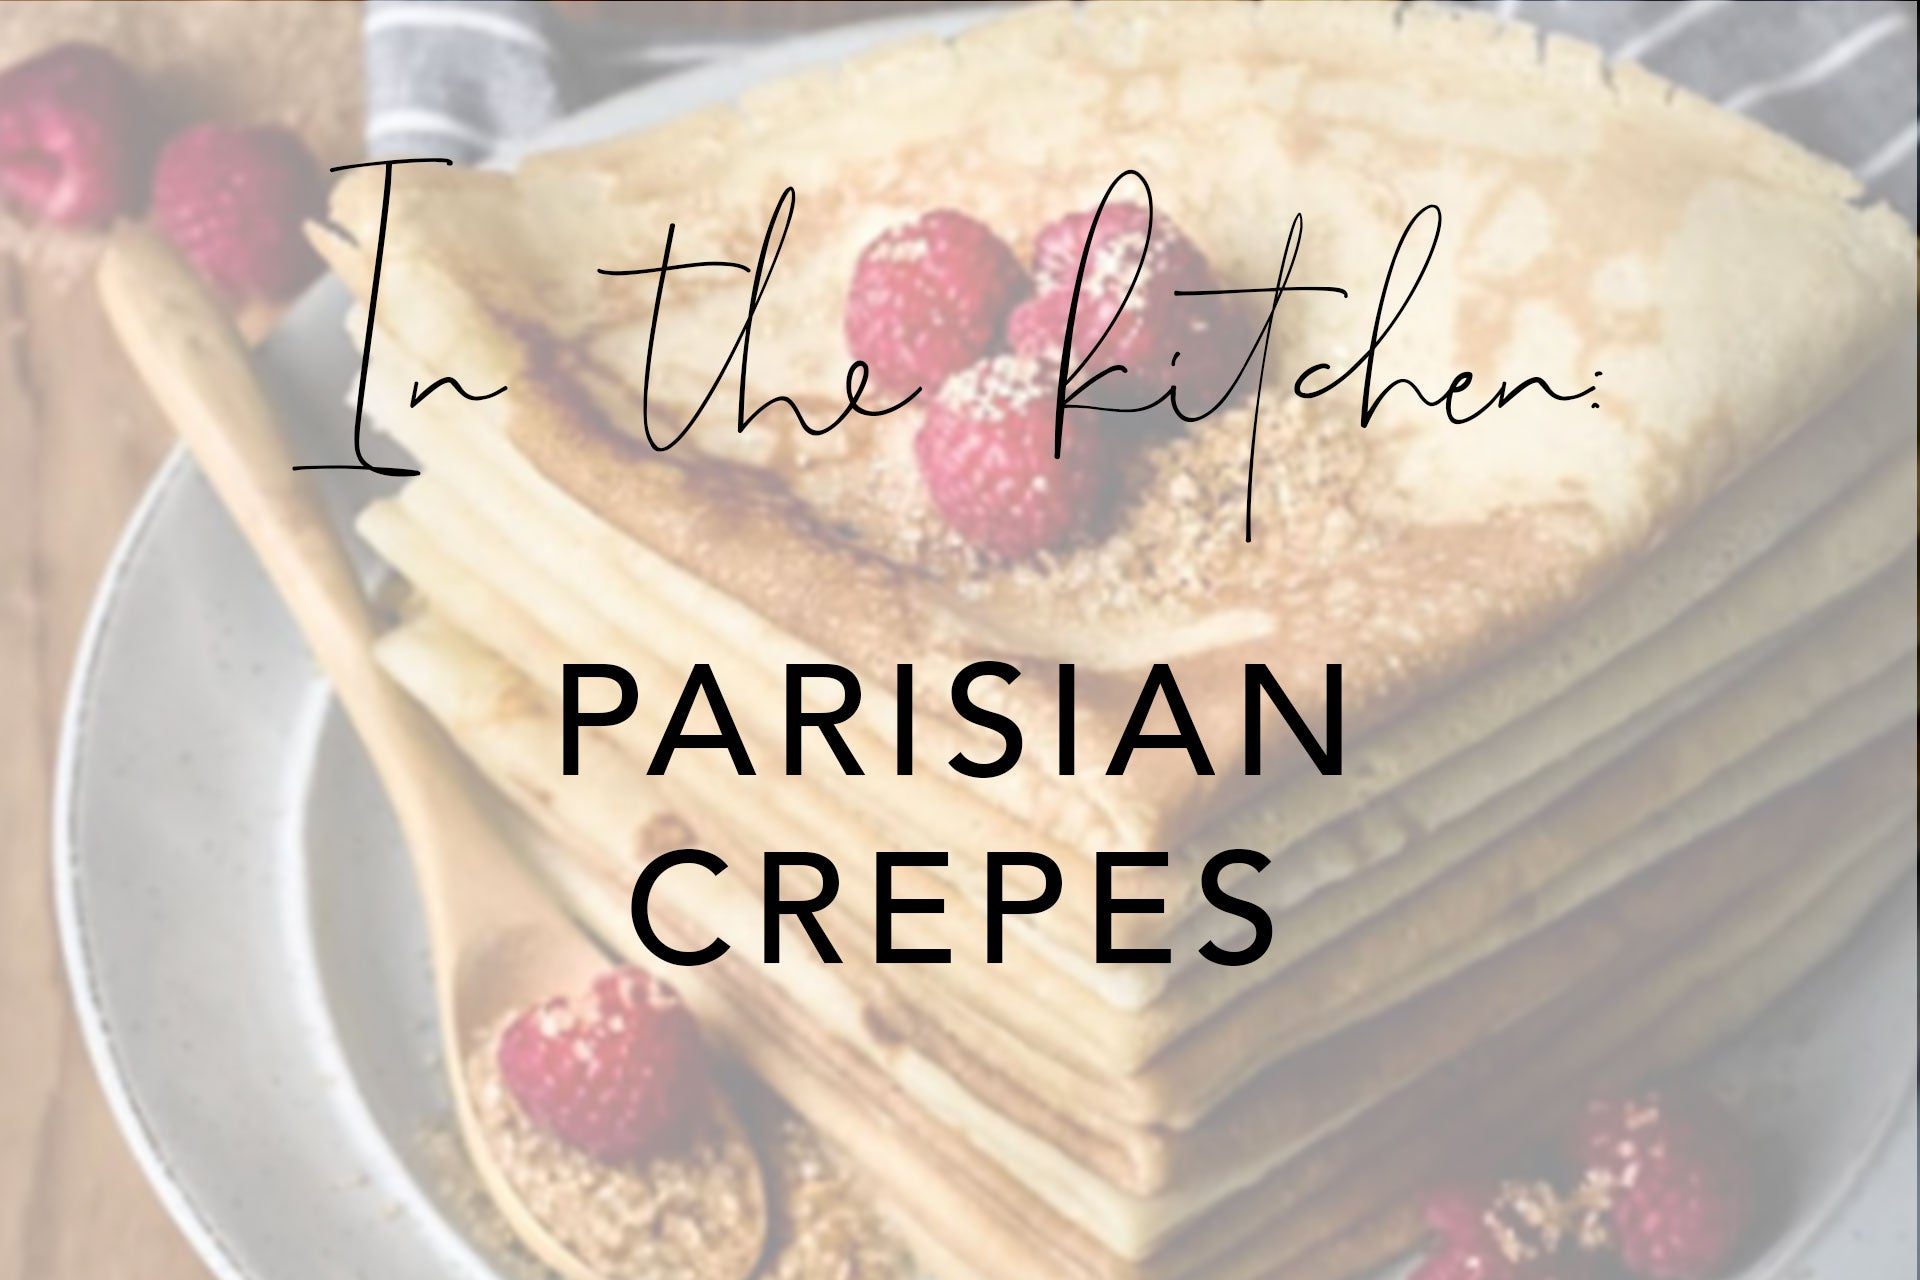 Parisian crepes - header